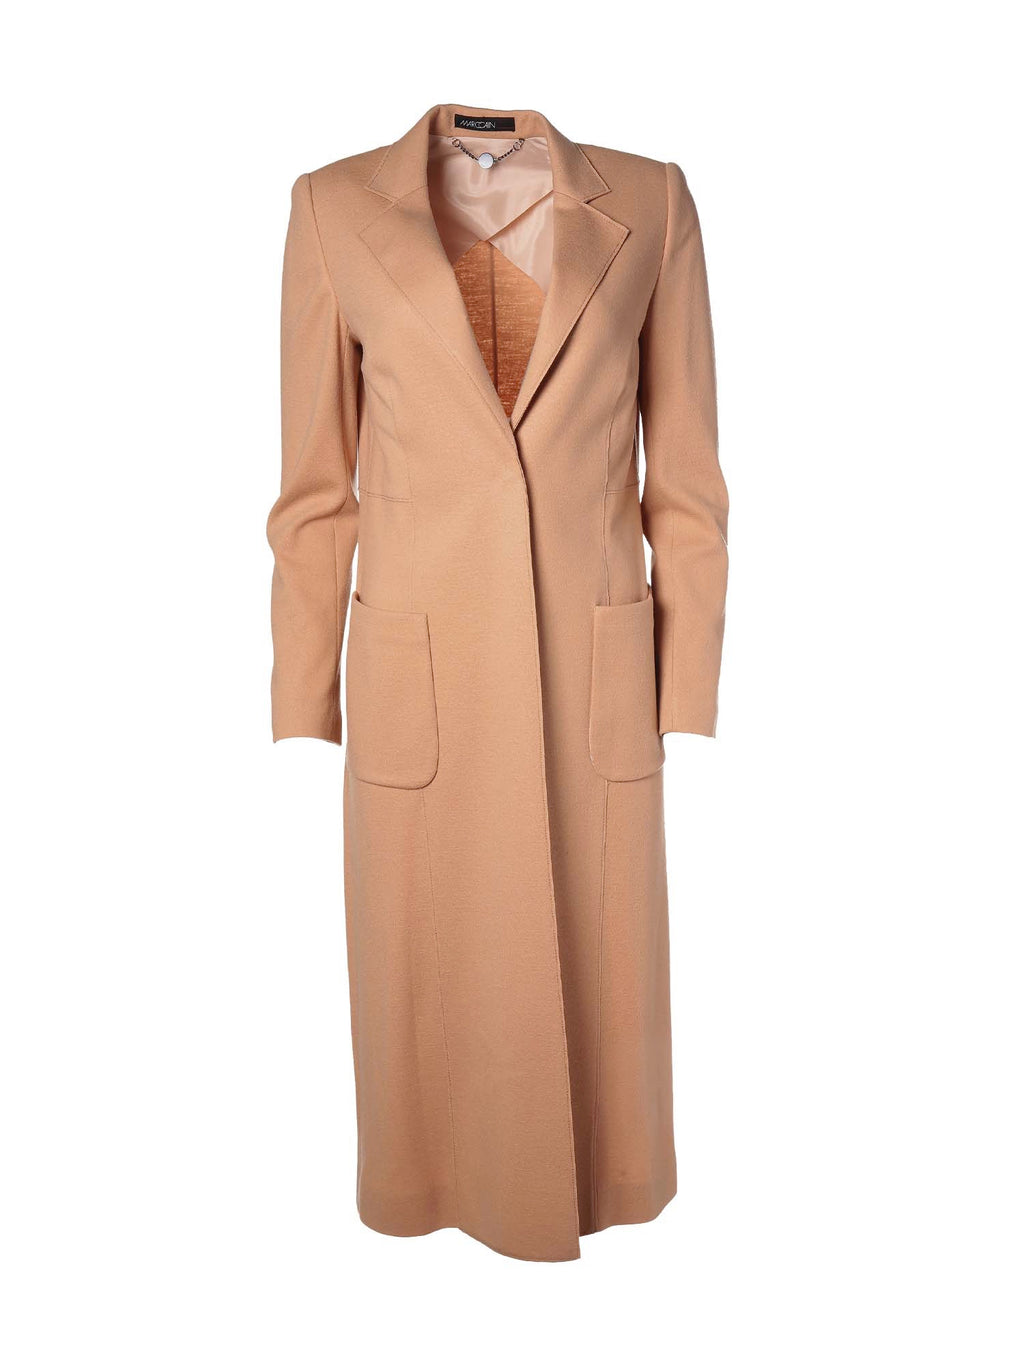 Marc Cain Coat in Wool Jersey - Caramel